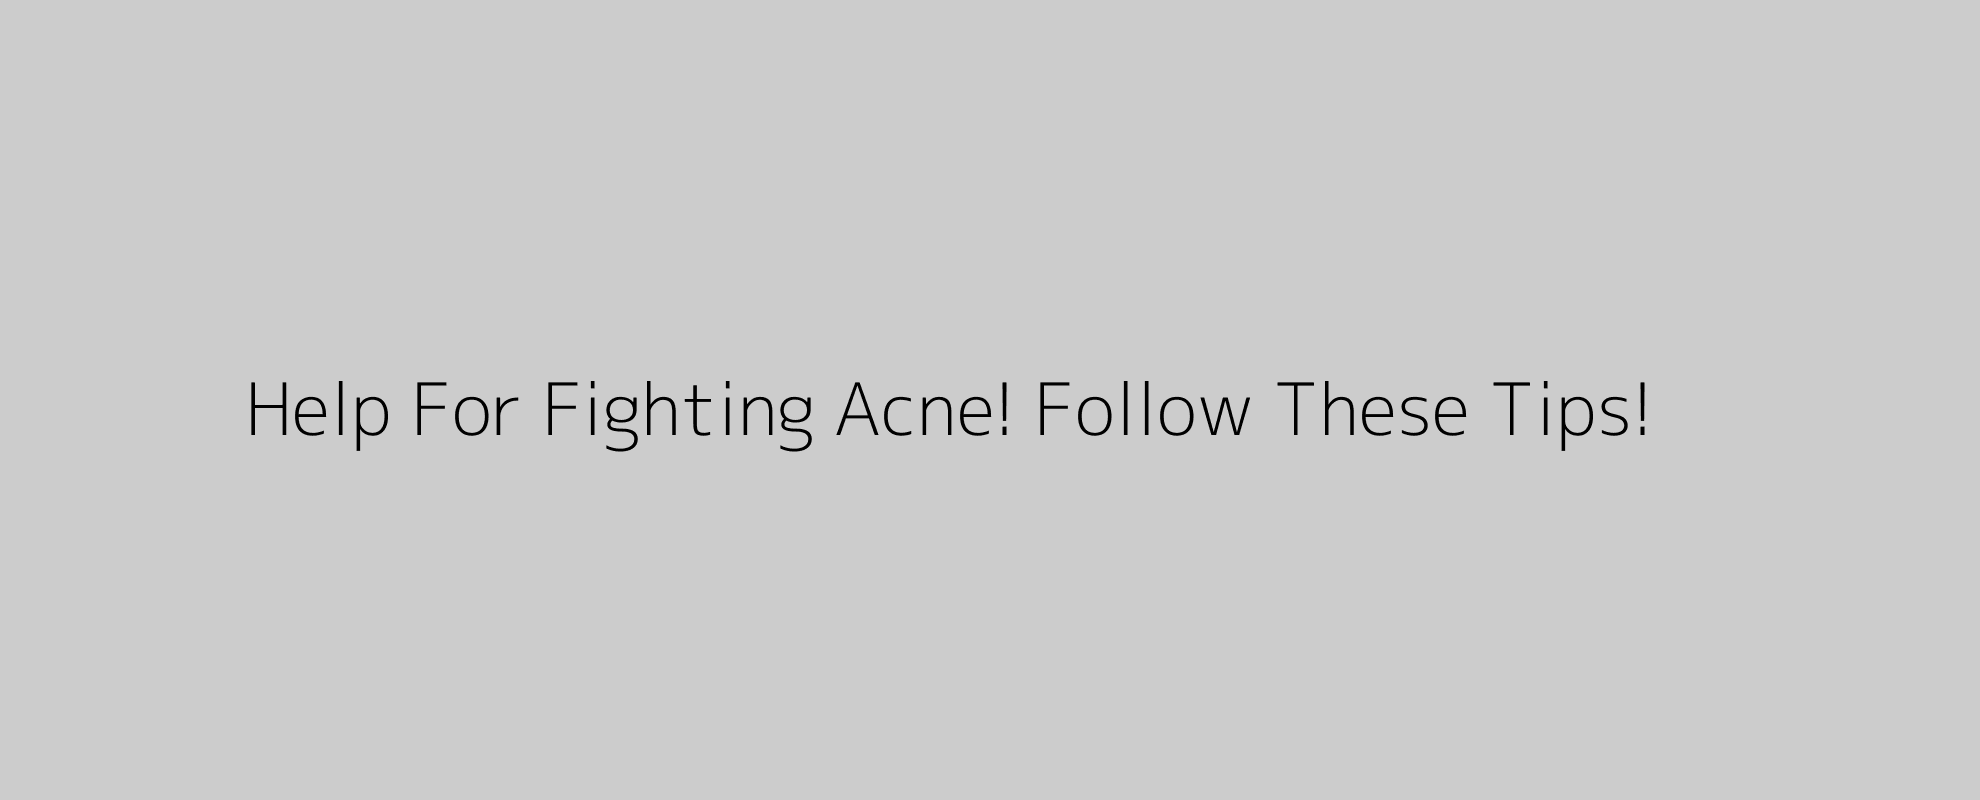 Help For Fighting Acne! Follow These Tips!